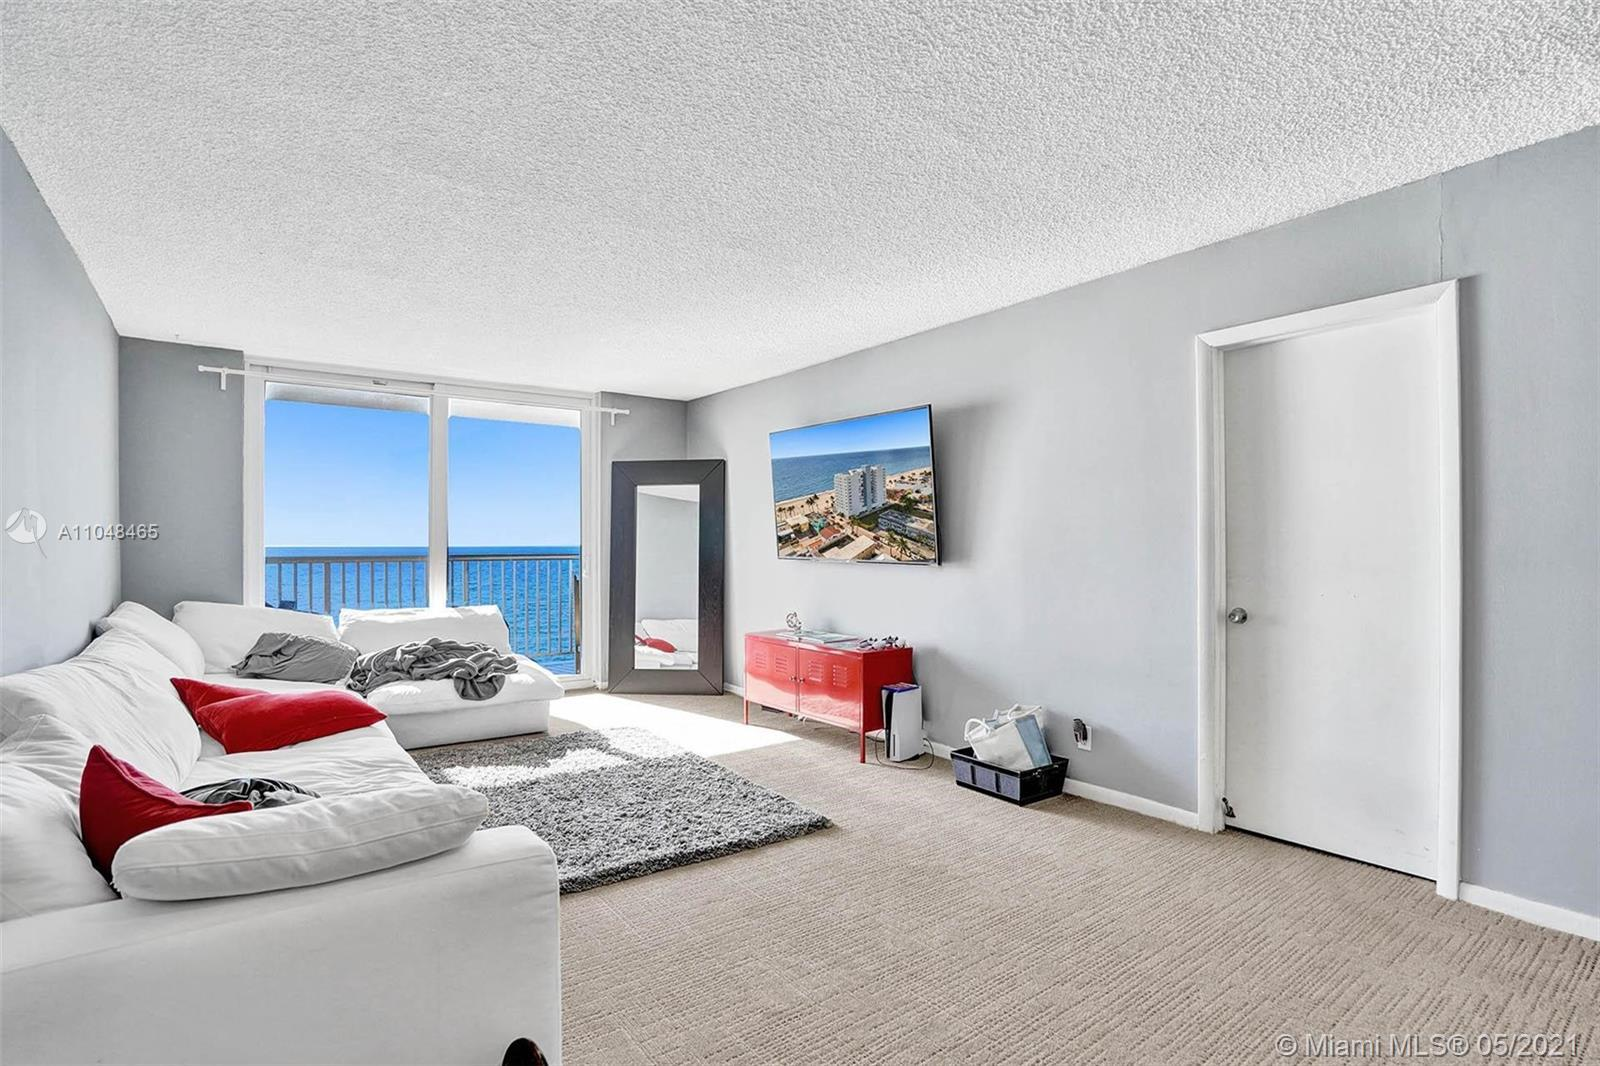 CATCH THE OPPORTUNITY TO PURCHASE YOUR HOLLYWOOD BEACHFRONT CONDO! GREAT UNIT LOCATED IN THE EDGEWAT